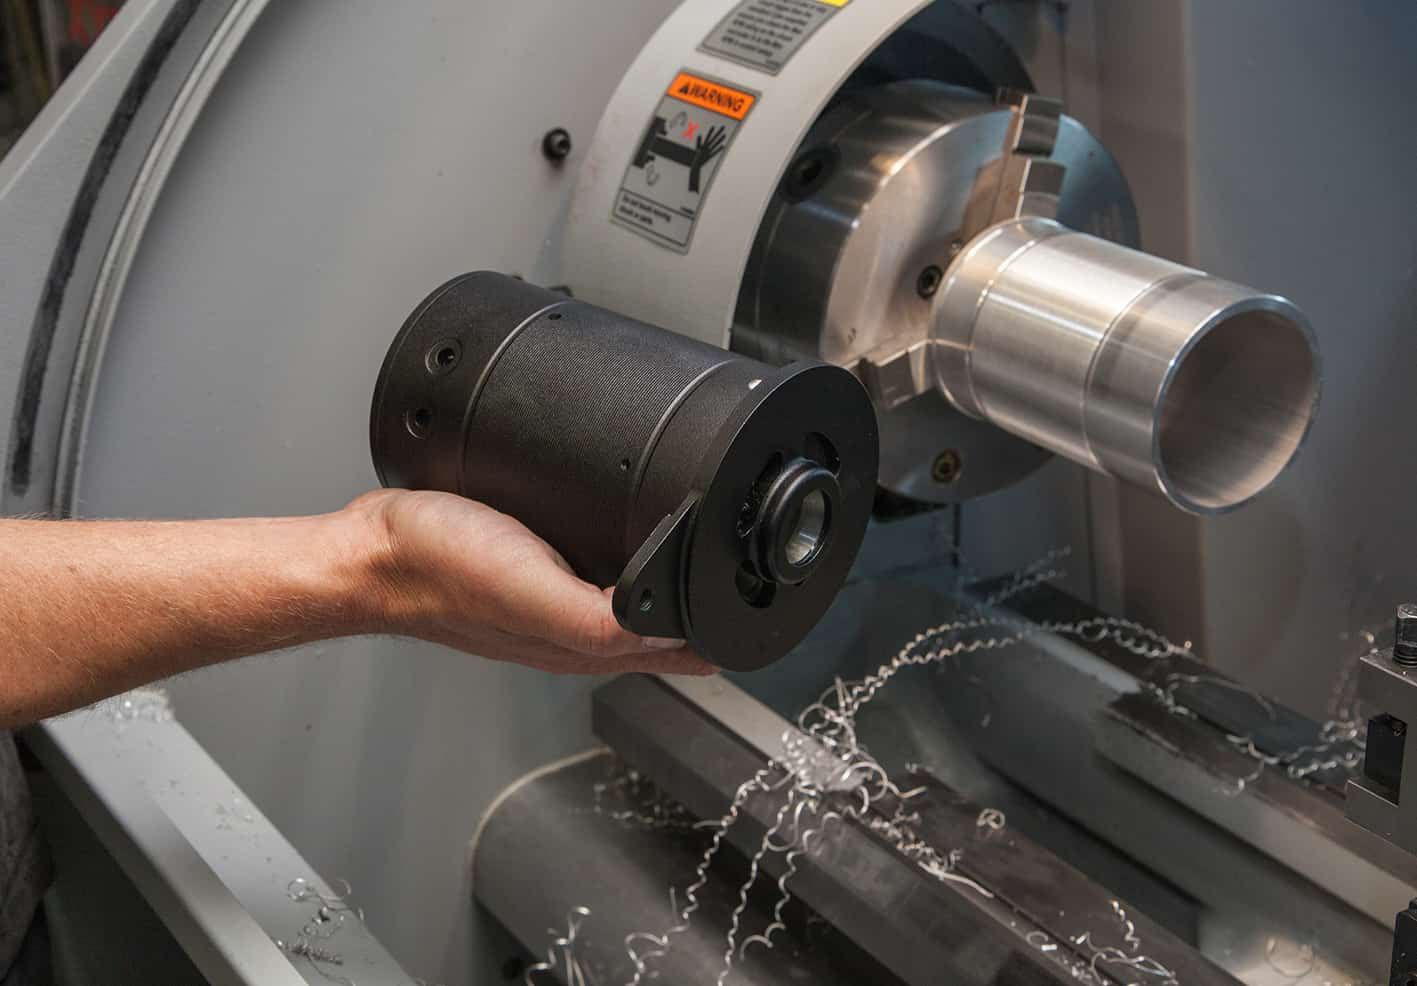 The XYZ machine tools have accelerated work rates